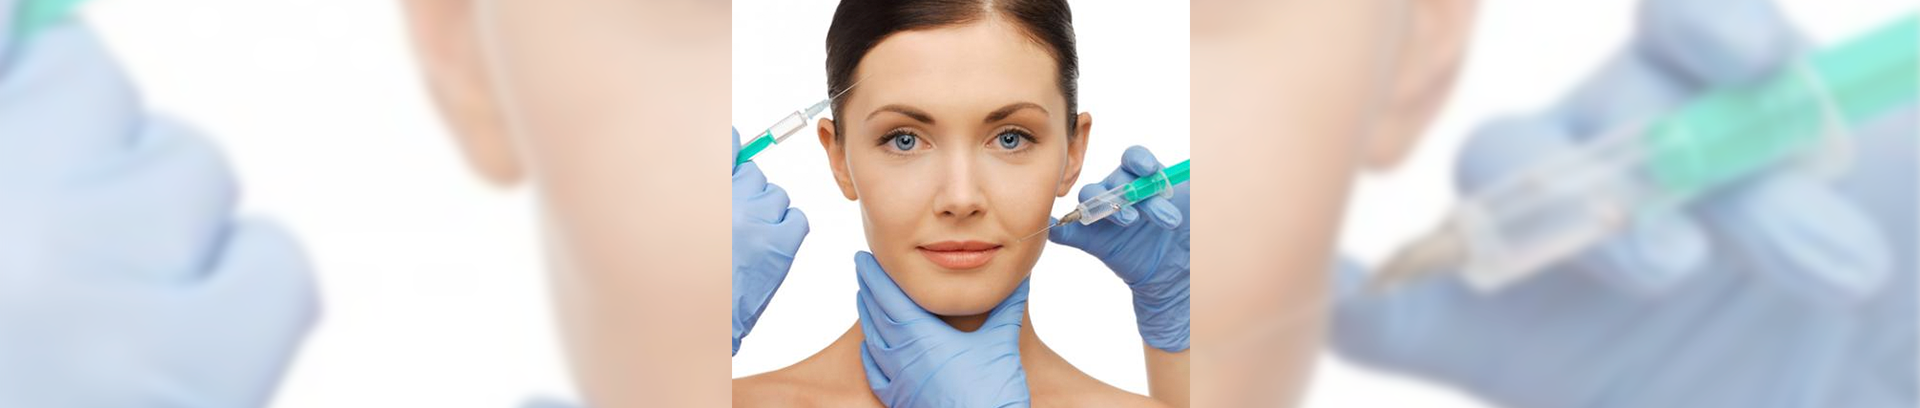 Injecting patient with botox